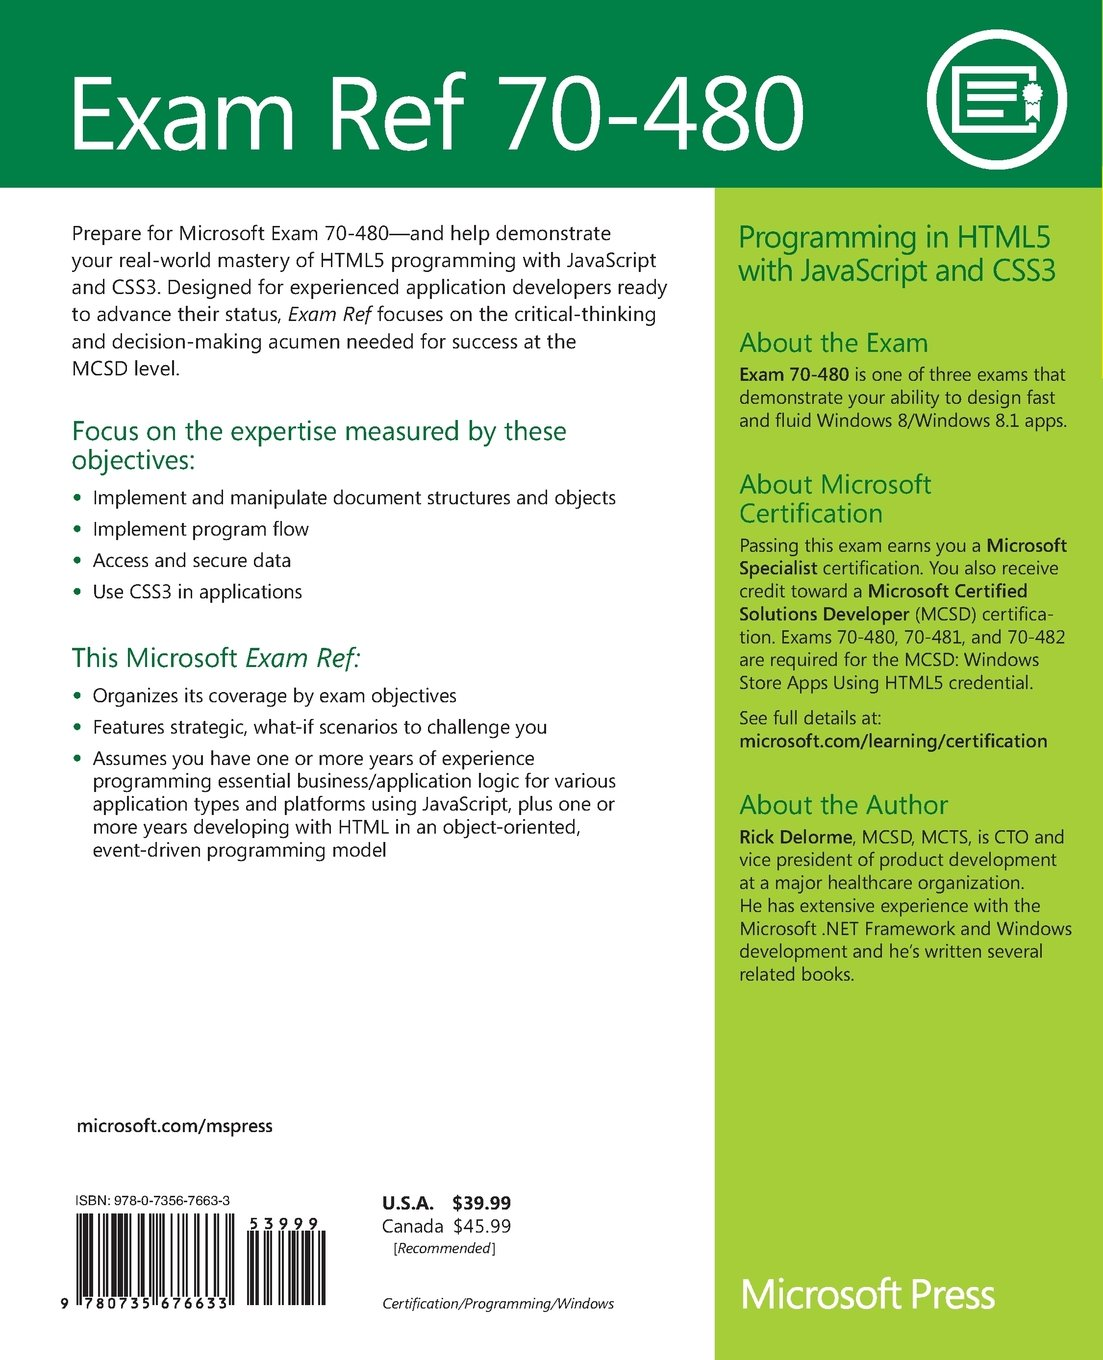 Buy exam ref 70 480 programming in html5 with javascript and buy exam ref 70 480 programming in html5 with javascript and css3 book online at low prices in india exam ref 70 480 programming in html5 with 1betcityfo Images